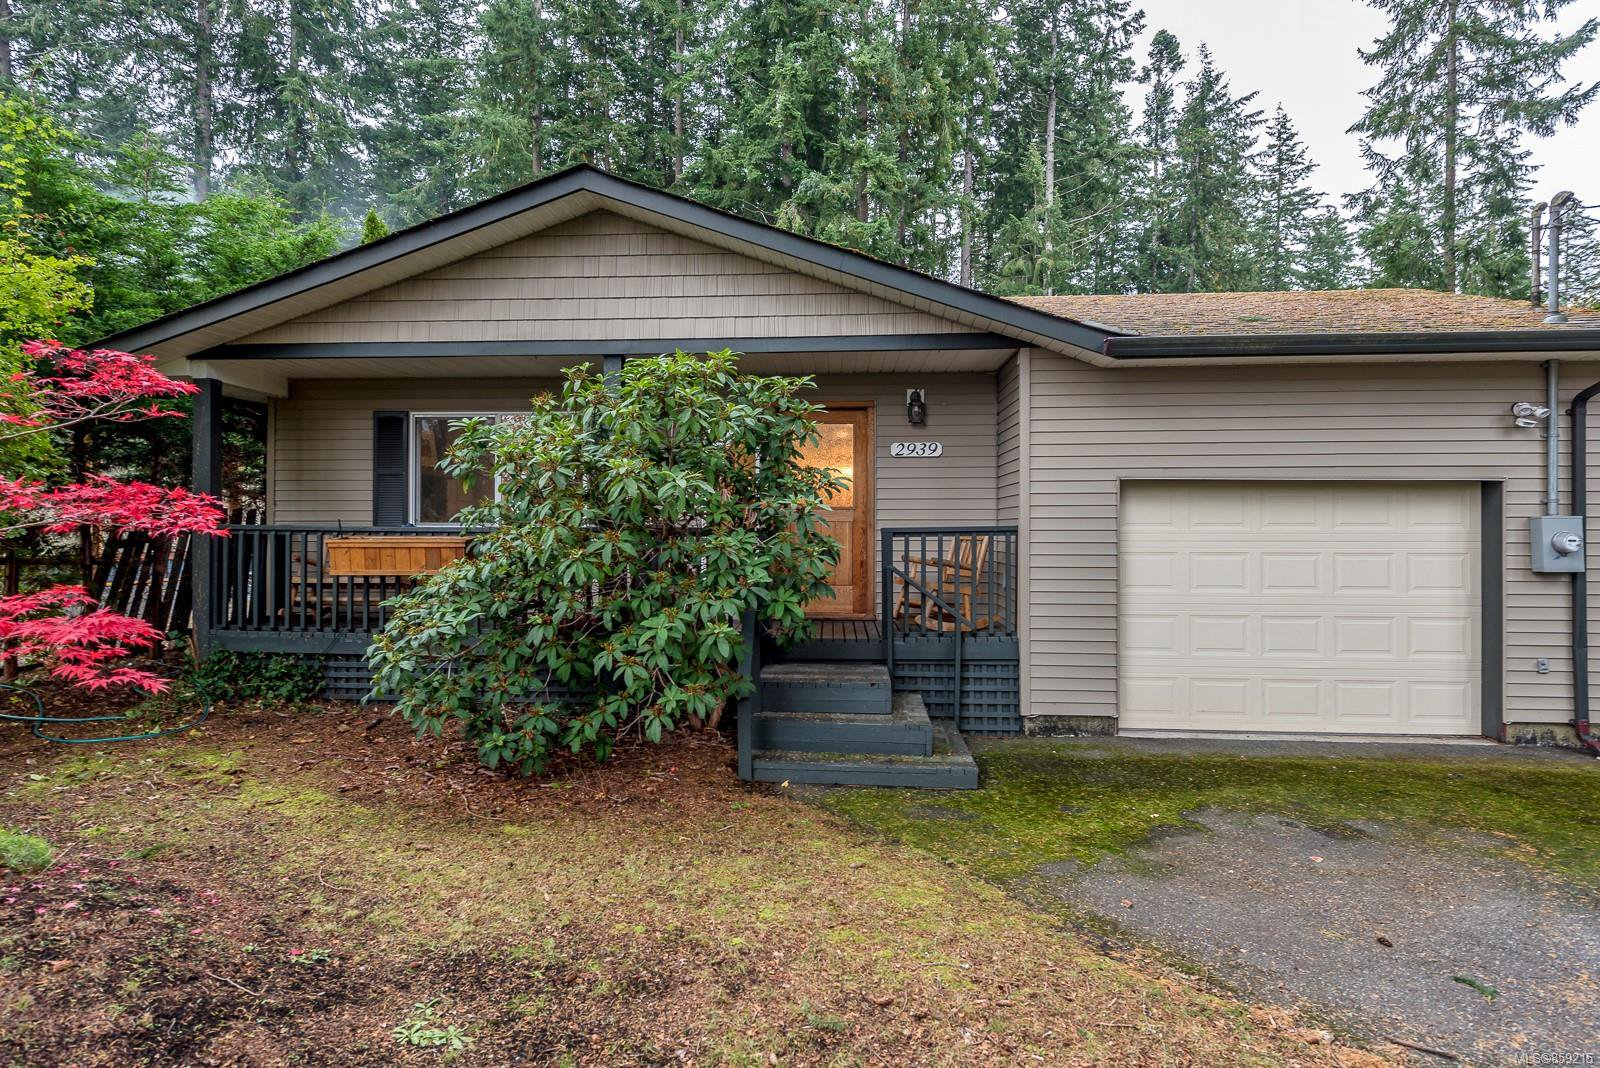 Main Photo: 2939 York Rd in : CR Campbell River South House for sale (Campbell River)  : MLS®# 859215